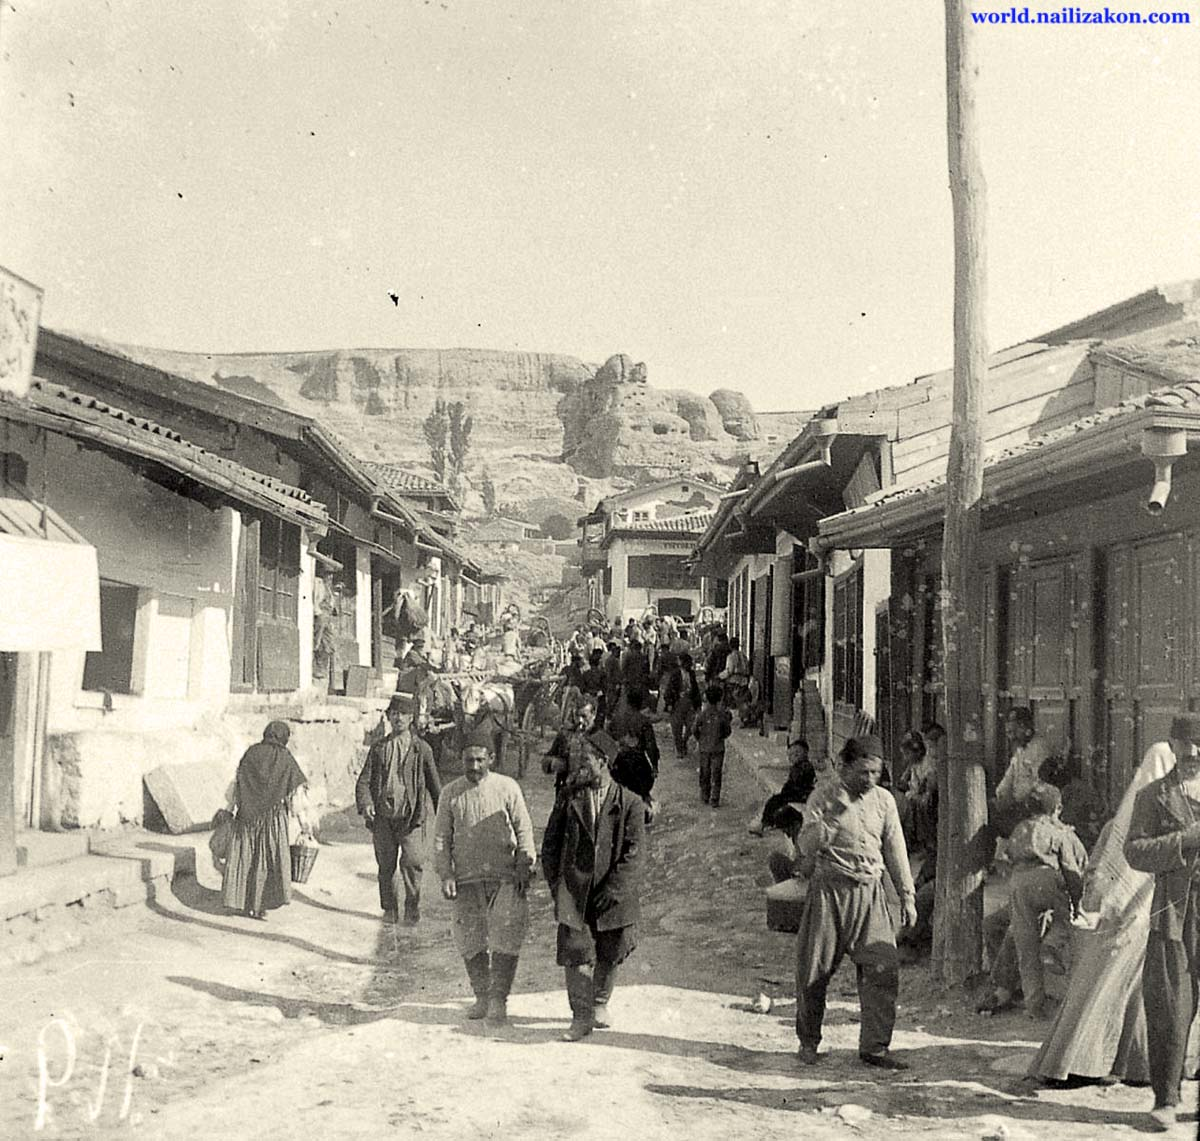 Bakhchysarai. The streets of the town